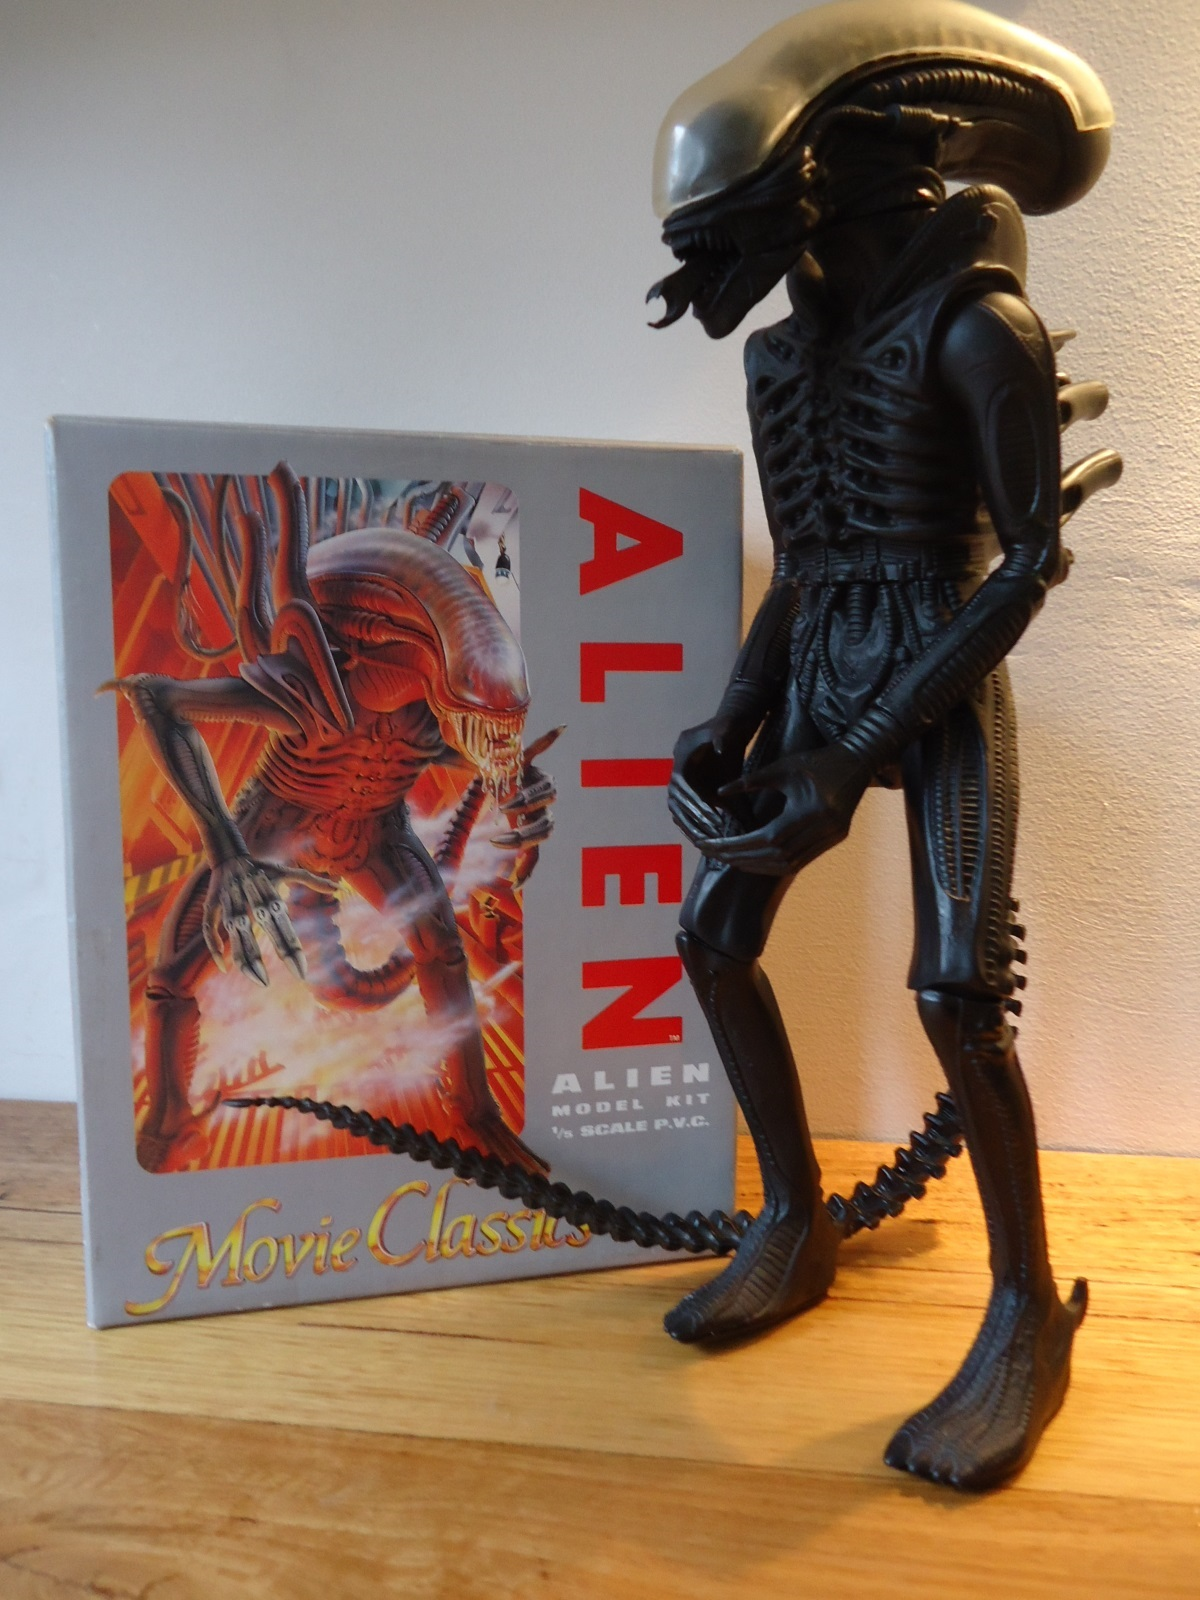 The 1991 Halcyon ALIEN model kit and its box.